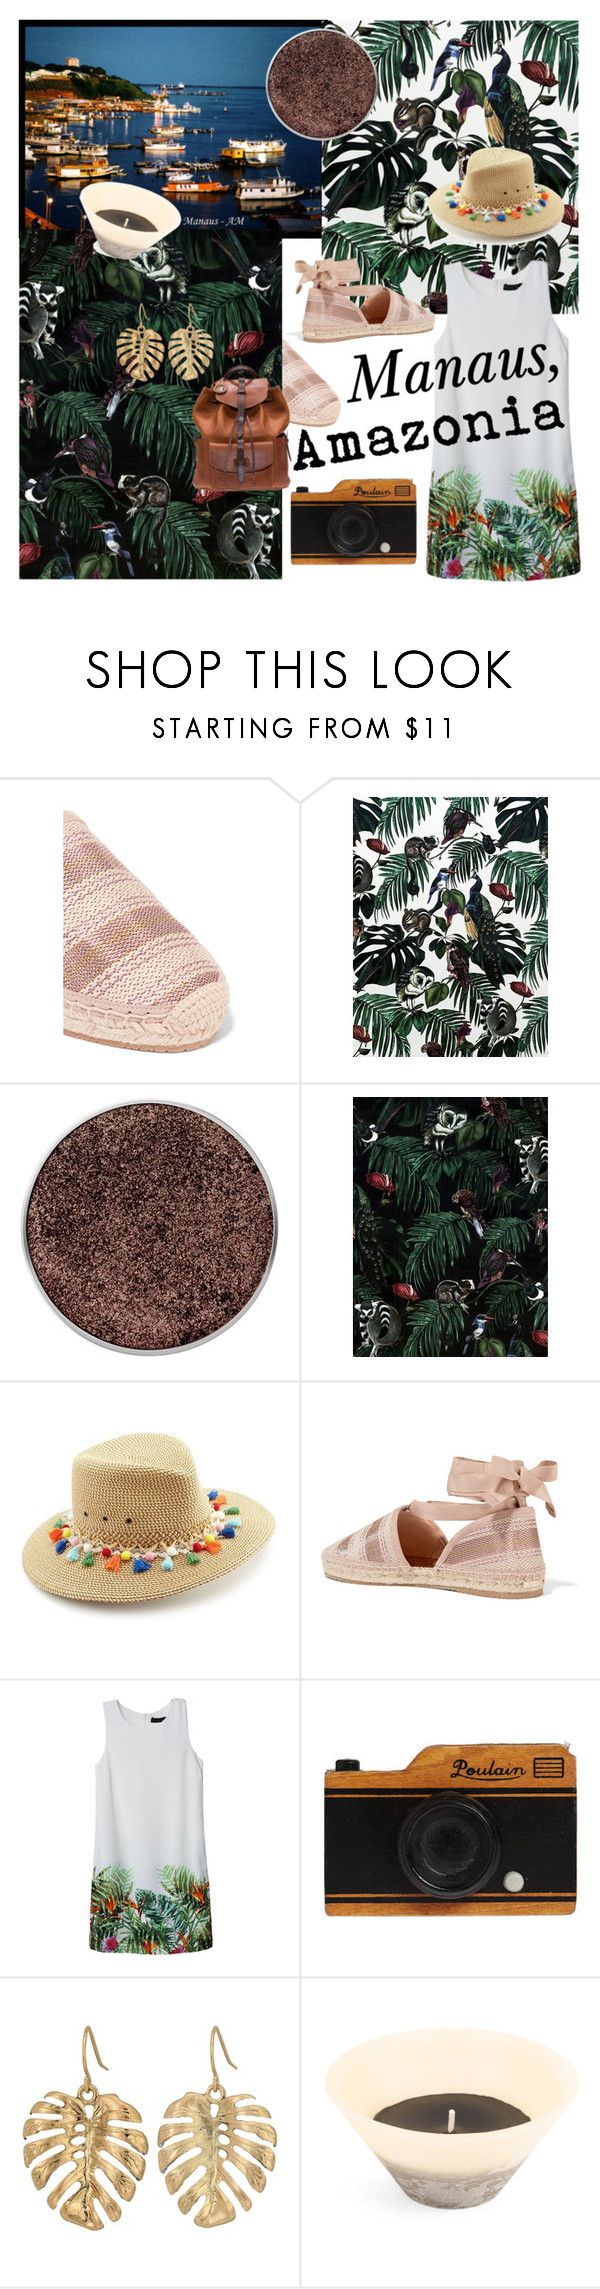 """Visit #brazil #amazoniacruise"" by no-face-fashion ❤ liked on Polyvore featuring Jimmy Choo, Witch & Watchman, Eric Javits, The Sak and Will Leather Goods"